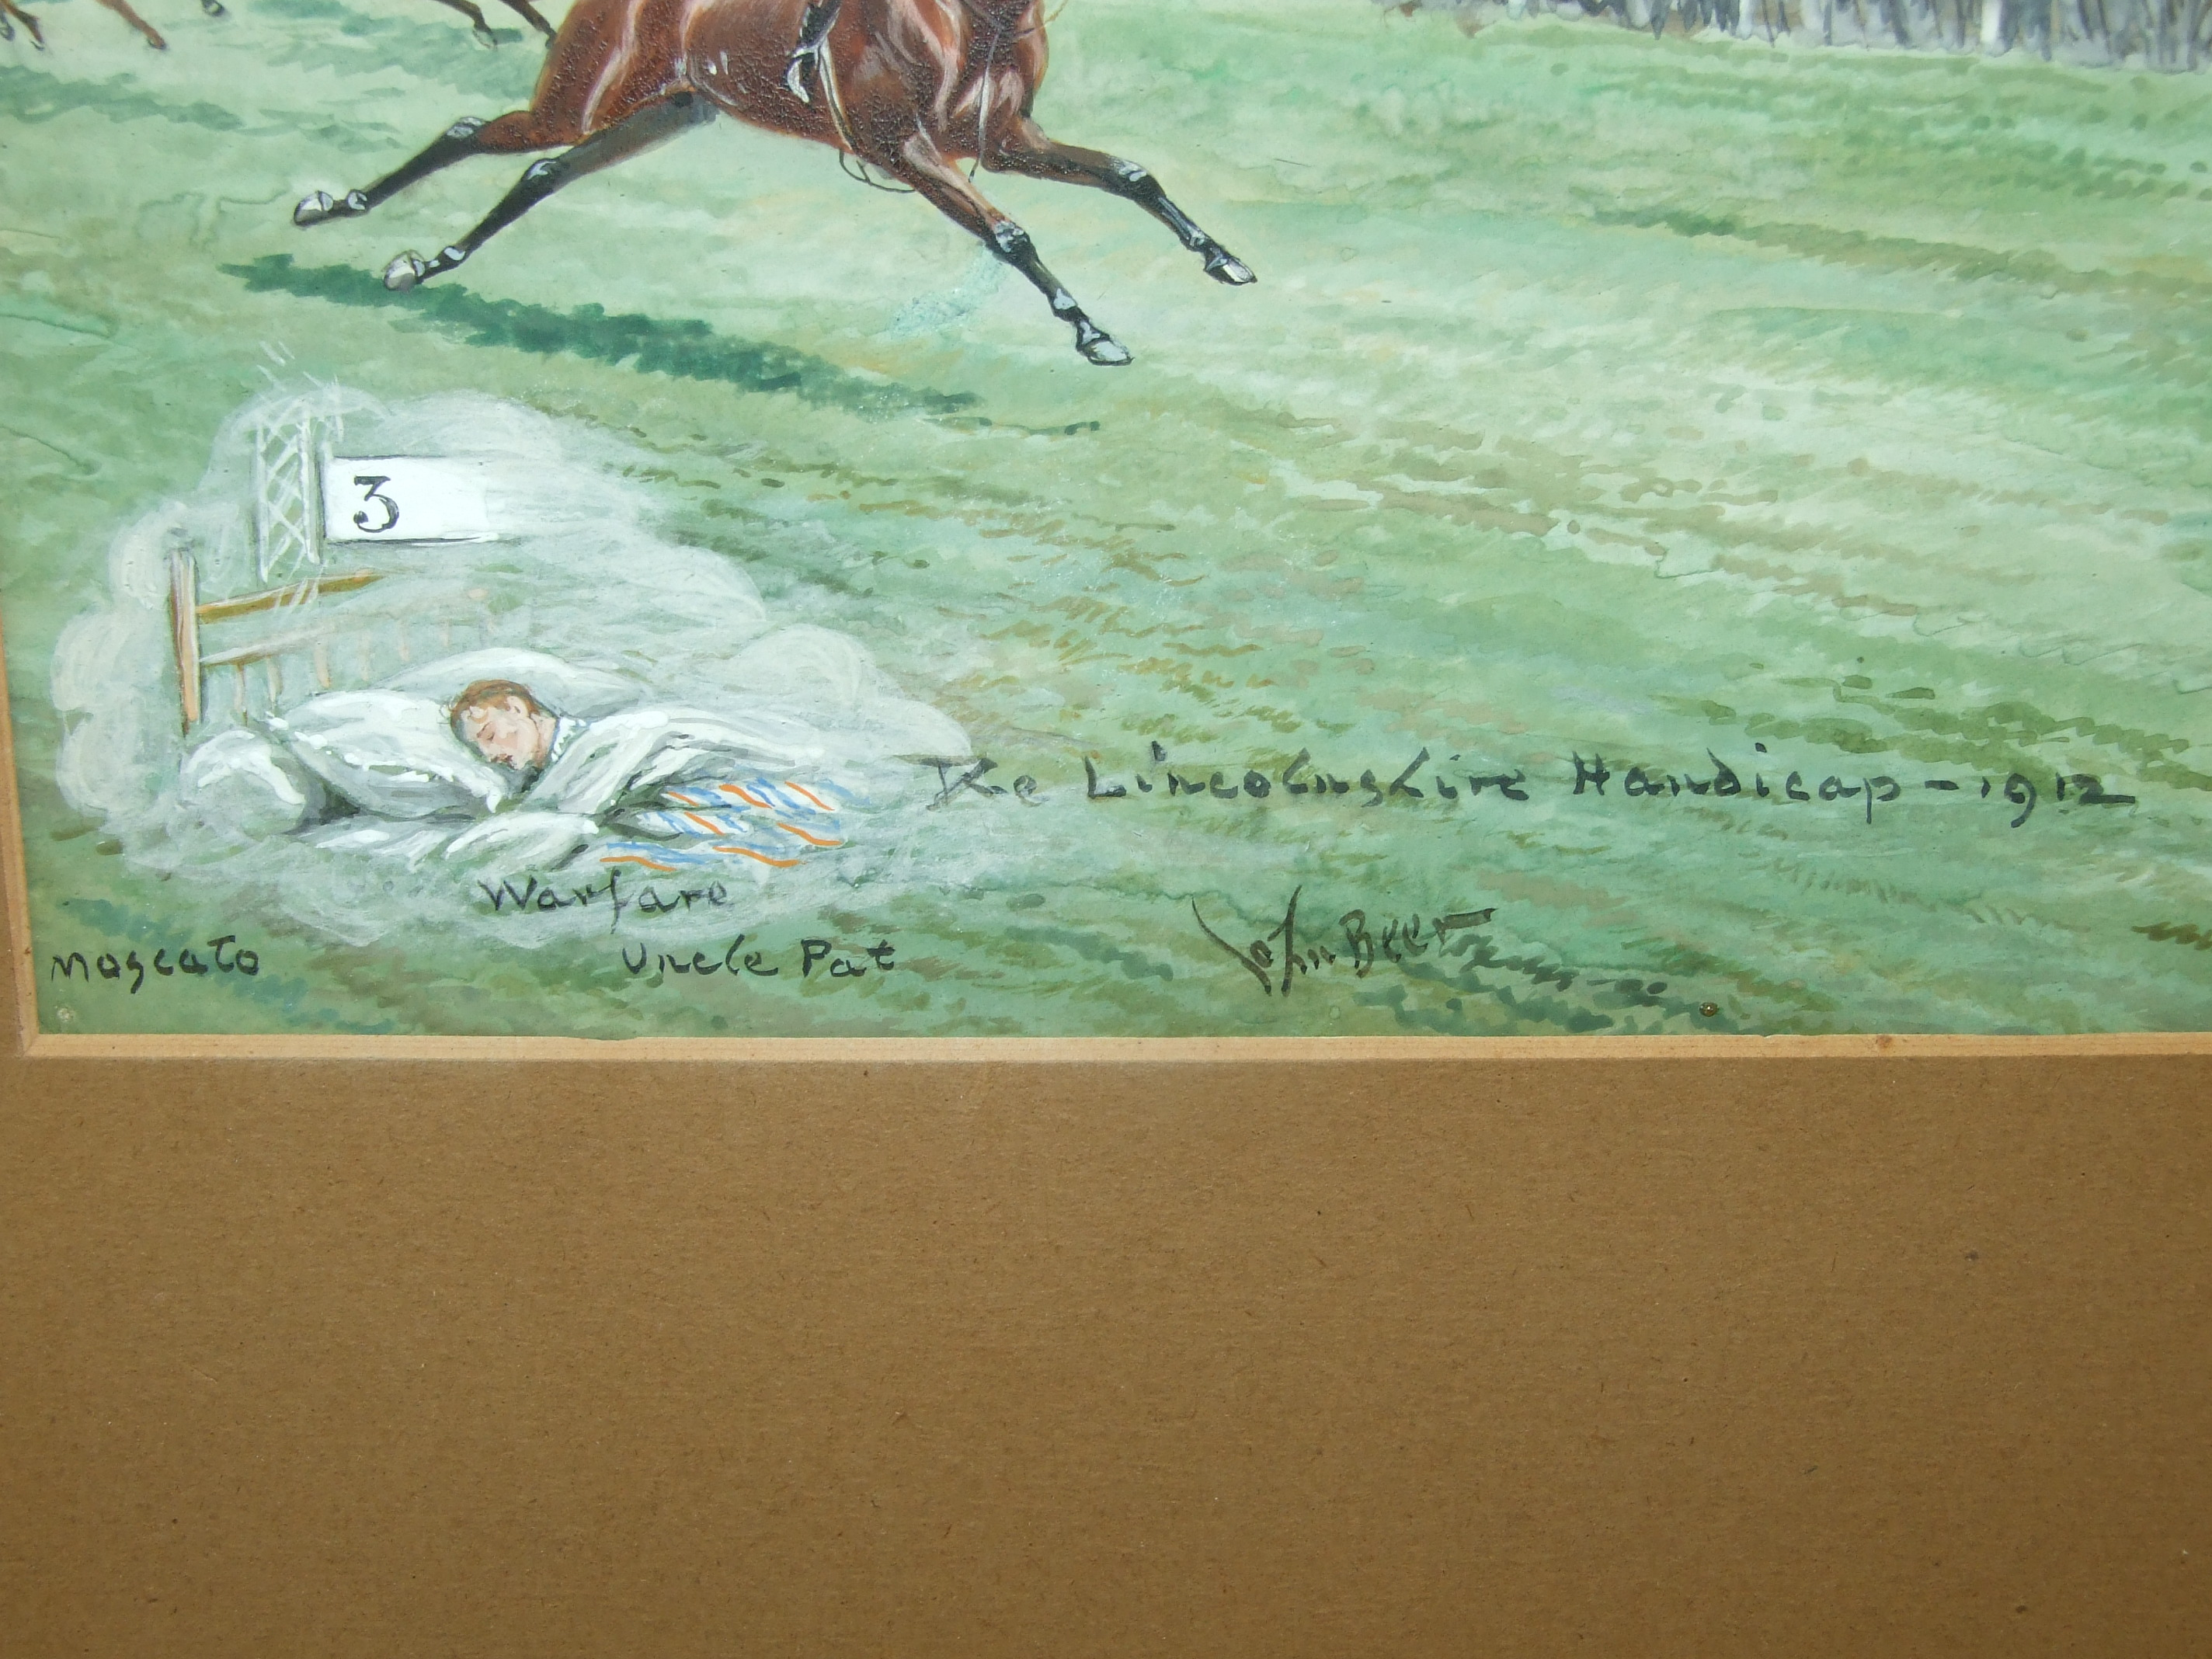 Lot 62 - John Beer (1883-1915), 'The Lincolnshire Handicap 1912', signed watercolour, inscribed with